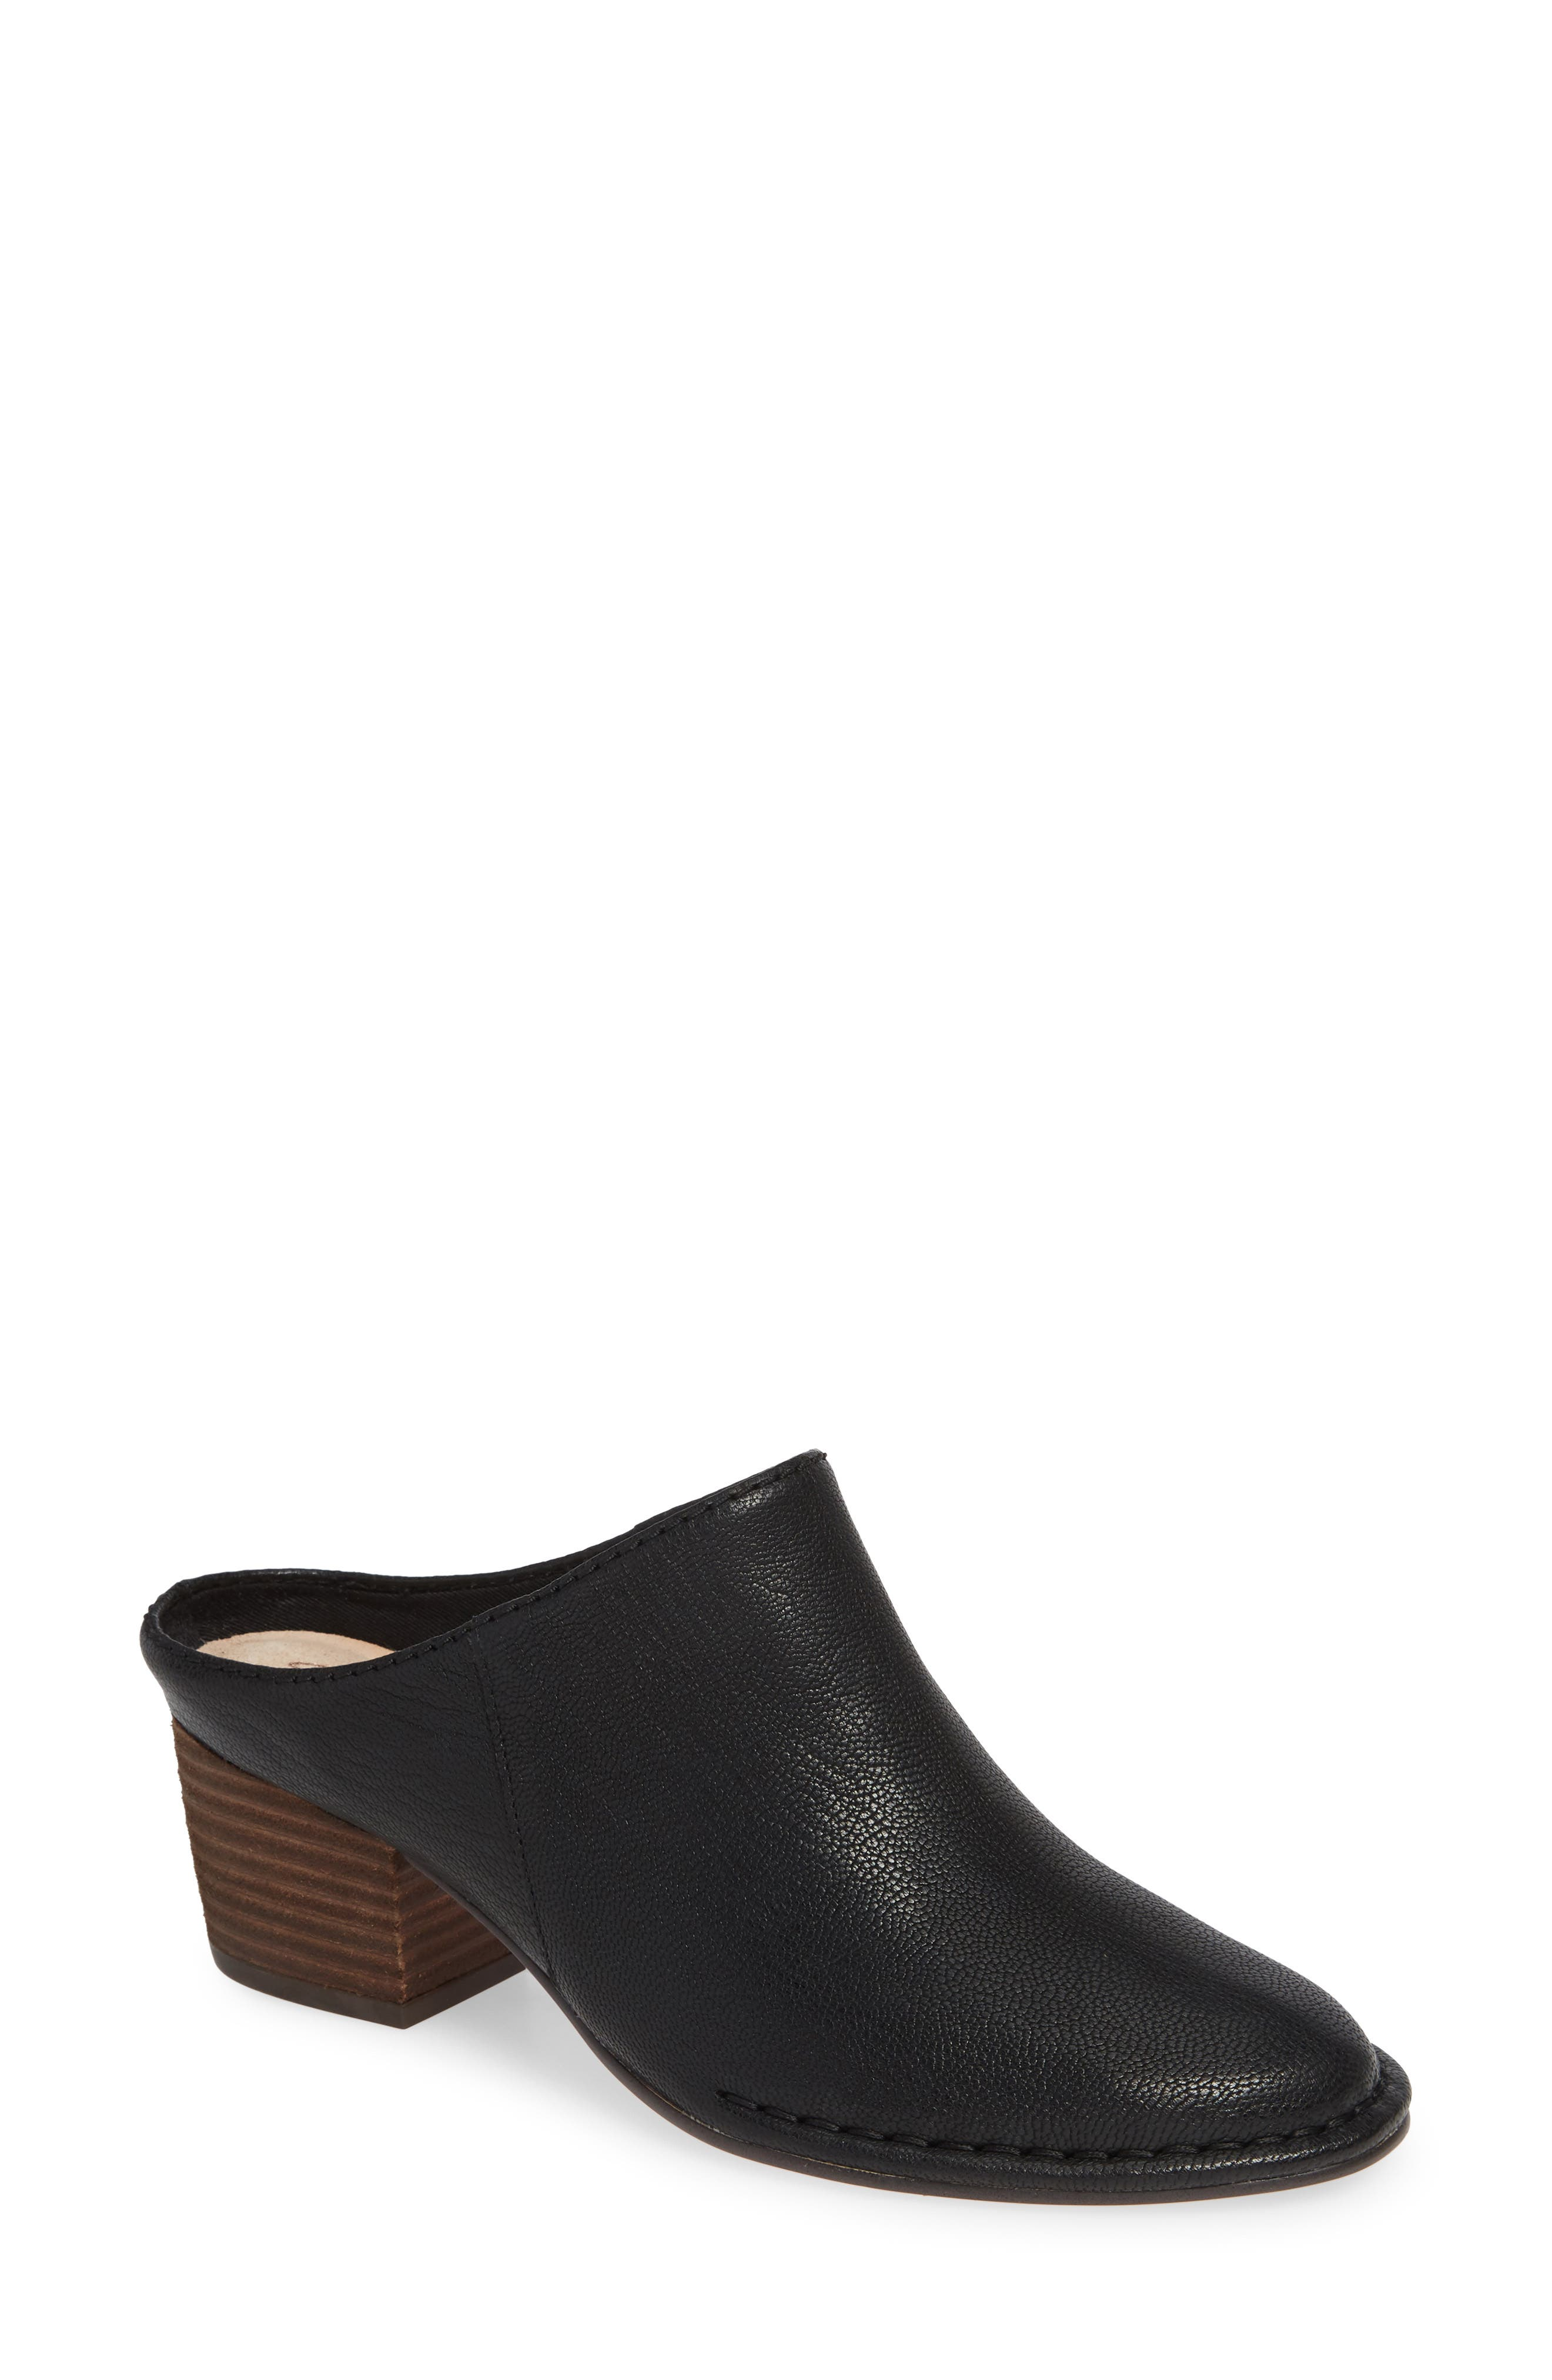 CLARKS<SUP>®</SUP>, Spiced Isla Mule, Main thumbnail 1, color, BLACK LEATHER